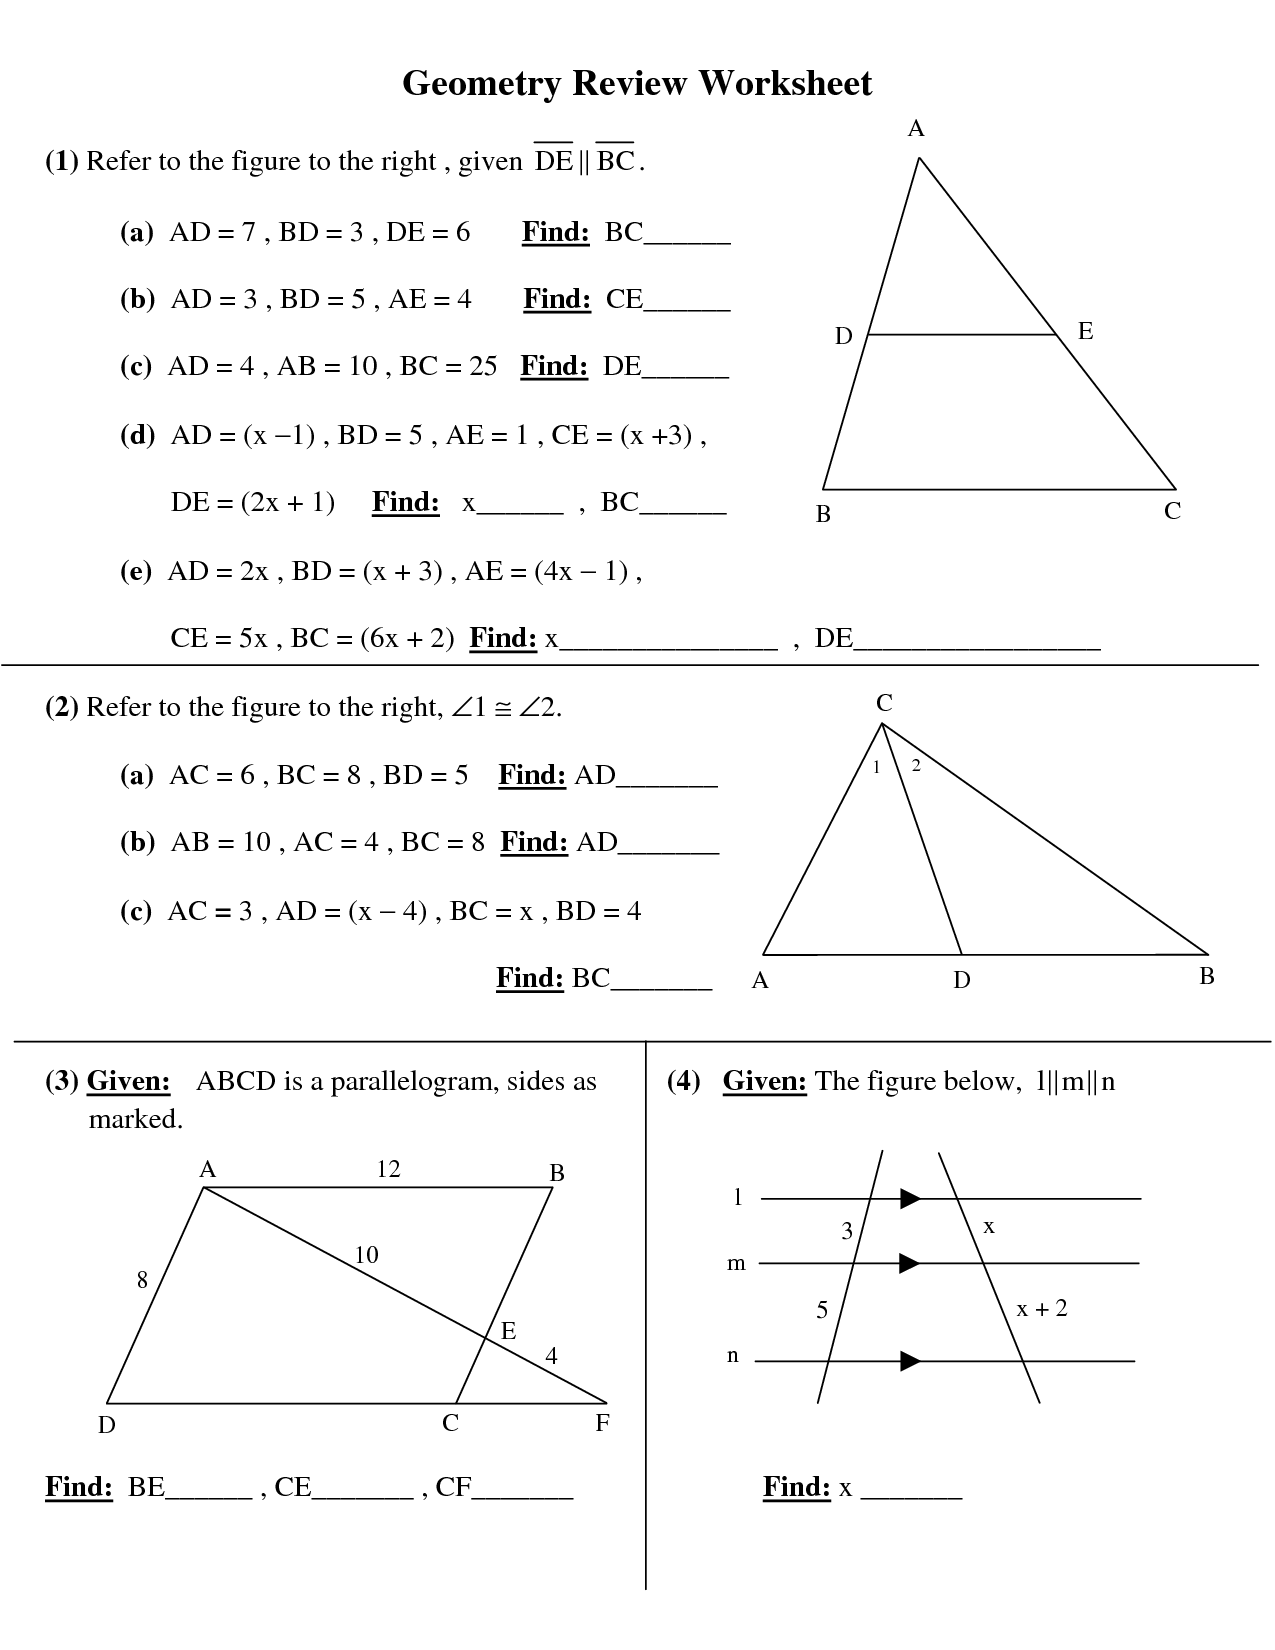 9th Grade Math Worksheet With Answers